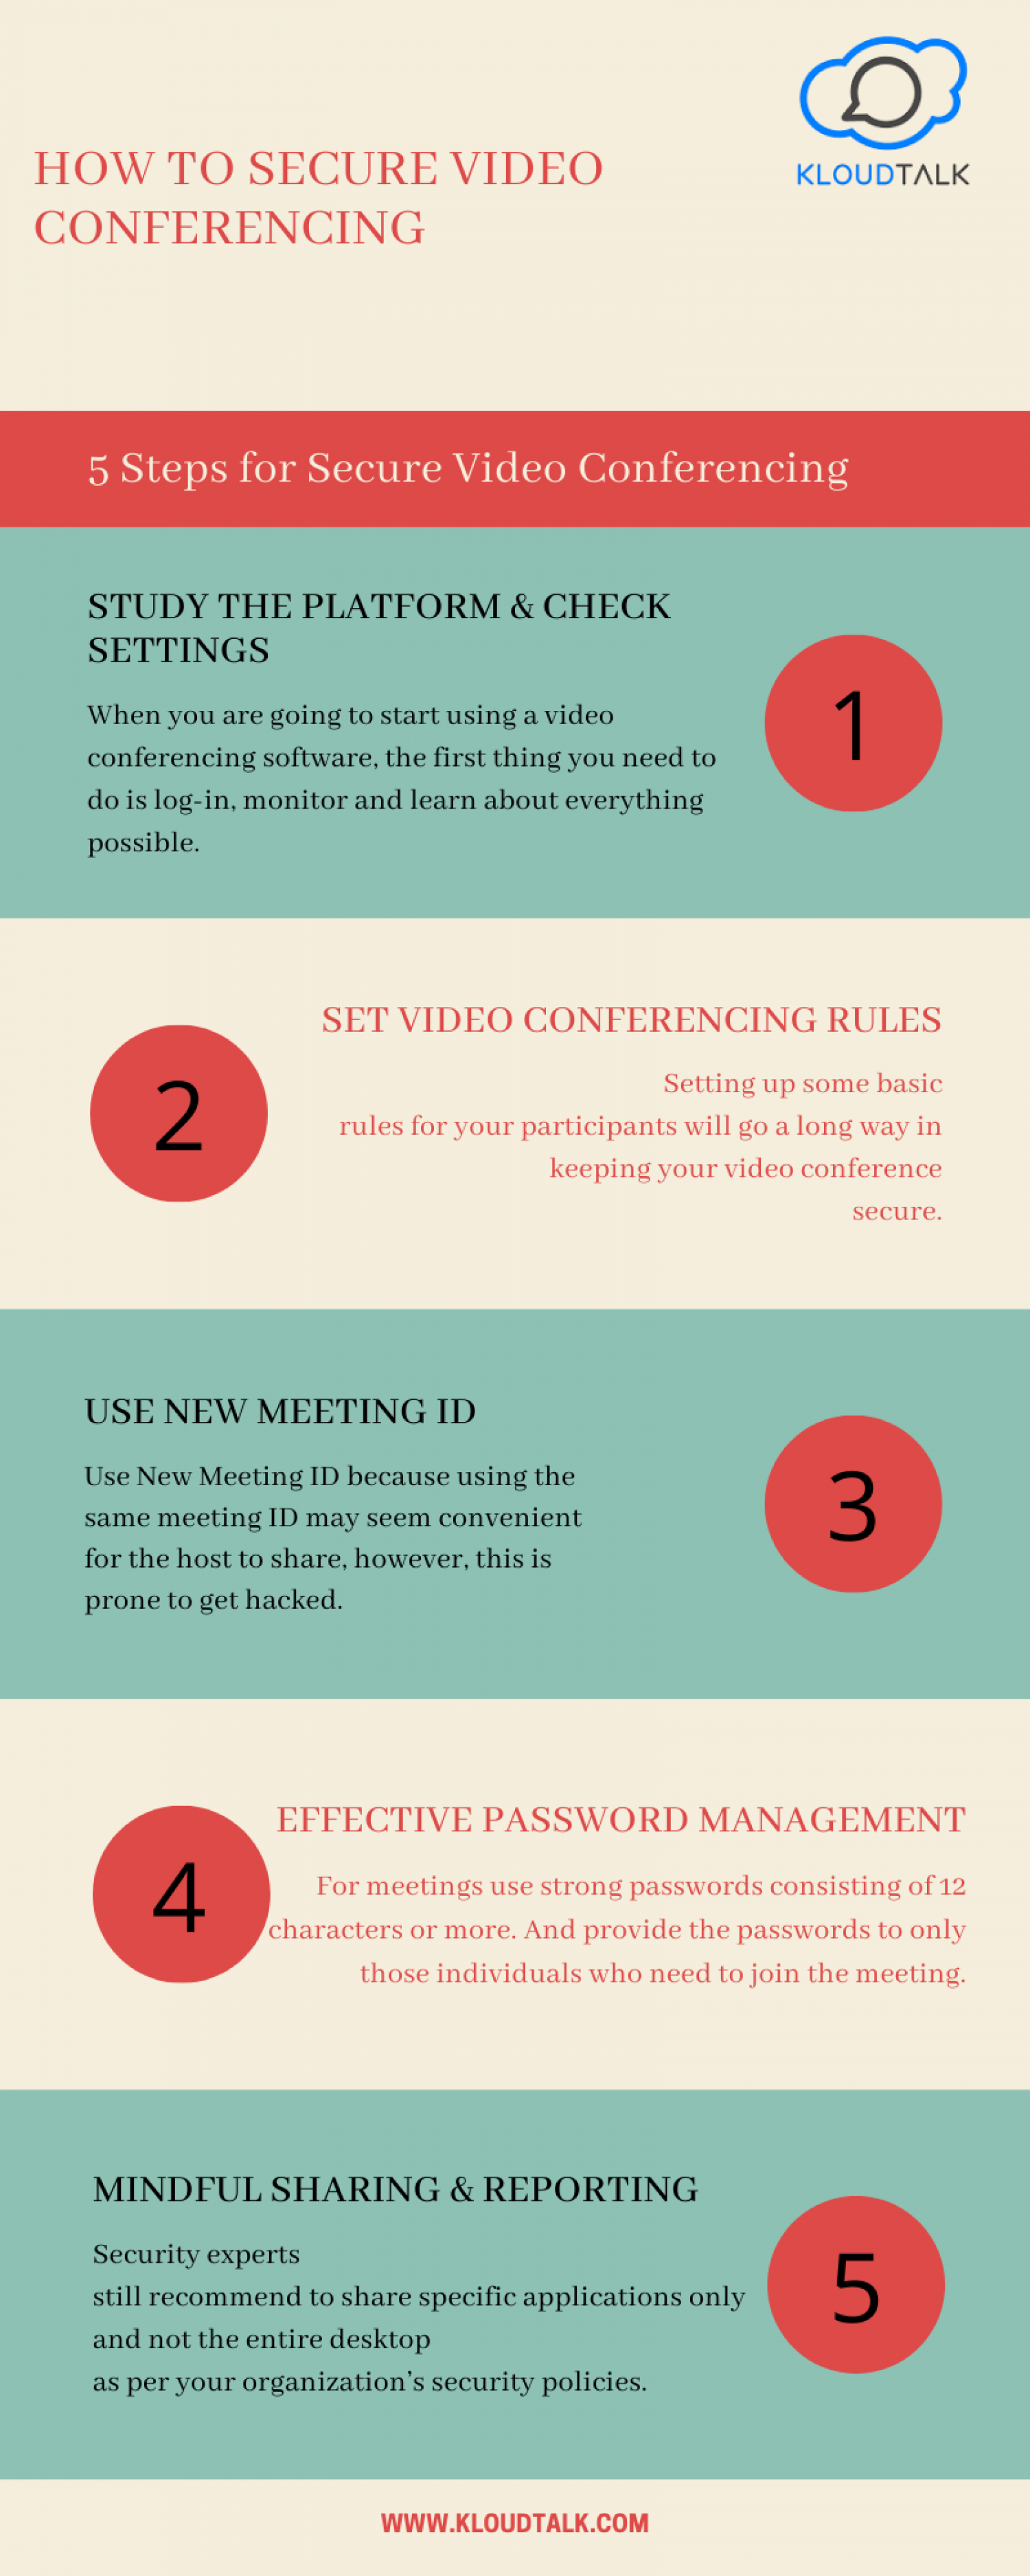 How to Secure Video Conferencing Infographic